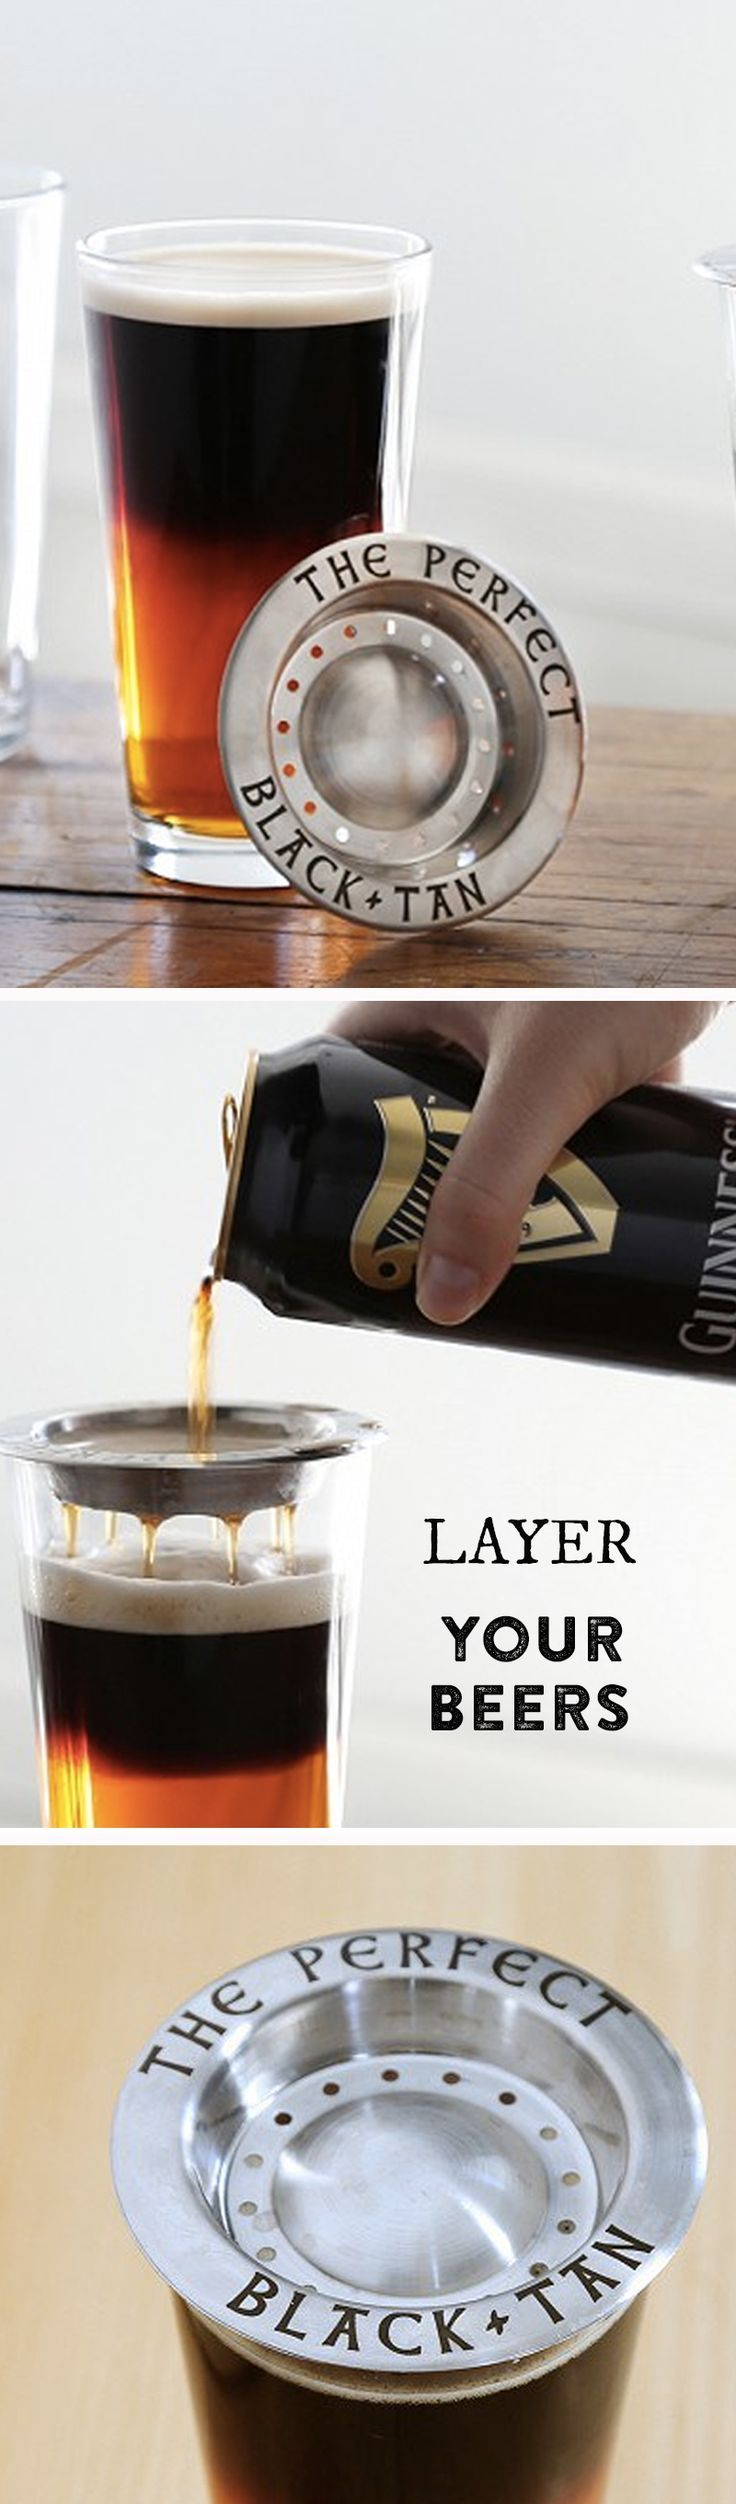 Layer multiple beers in one glass for more complex flavors and a striking visual effect. With this tool, all you need to do is pour.: